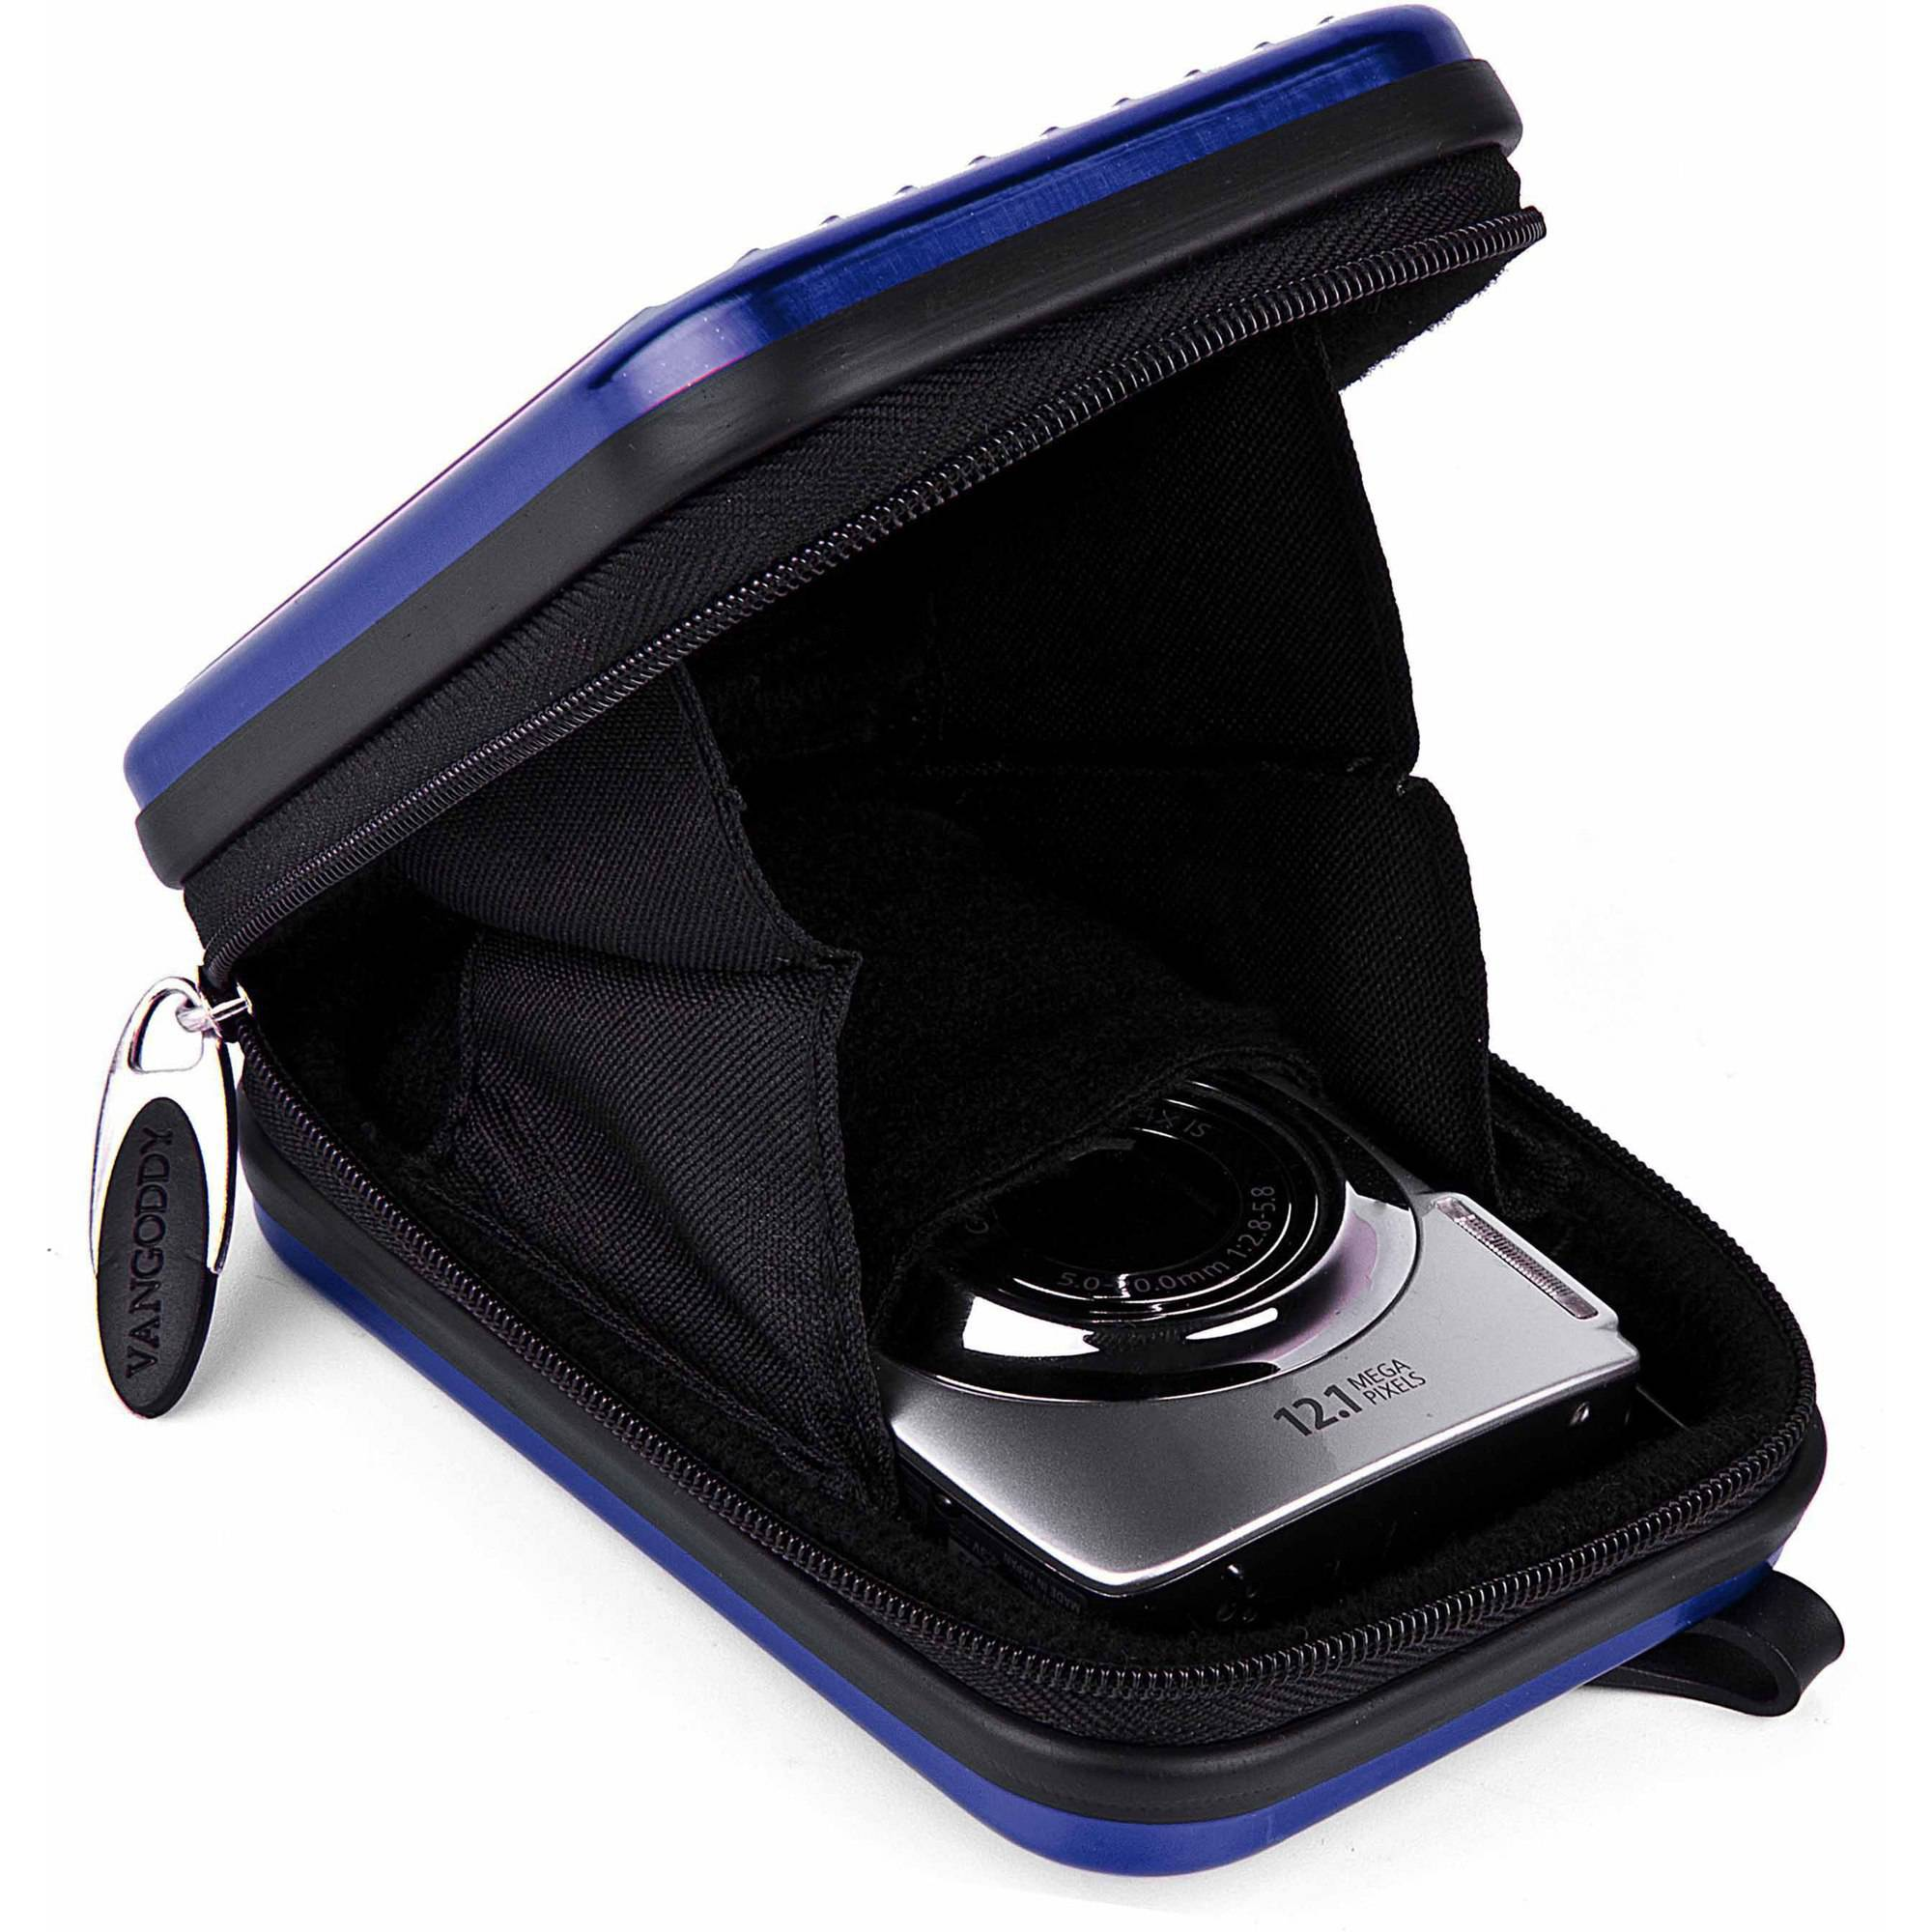 "Vangoddy Pascal Metal Aluminum Camera Travel Carrying Case for 4"" x 2.5"" Compact Digital Cameras"